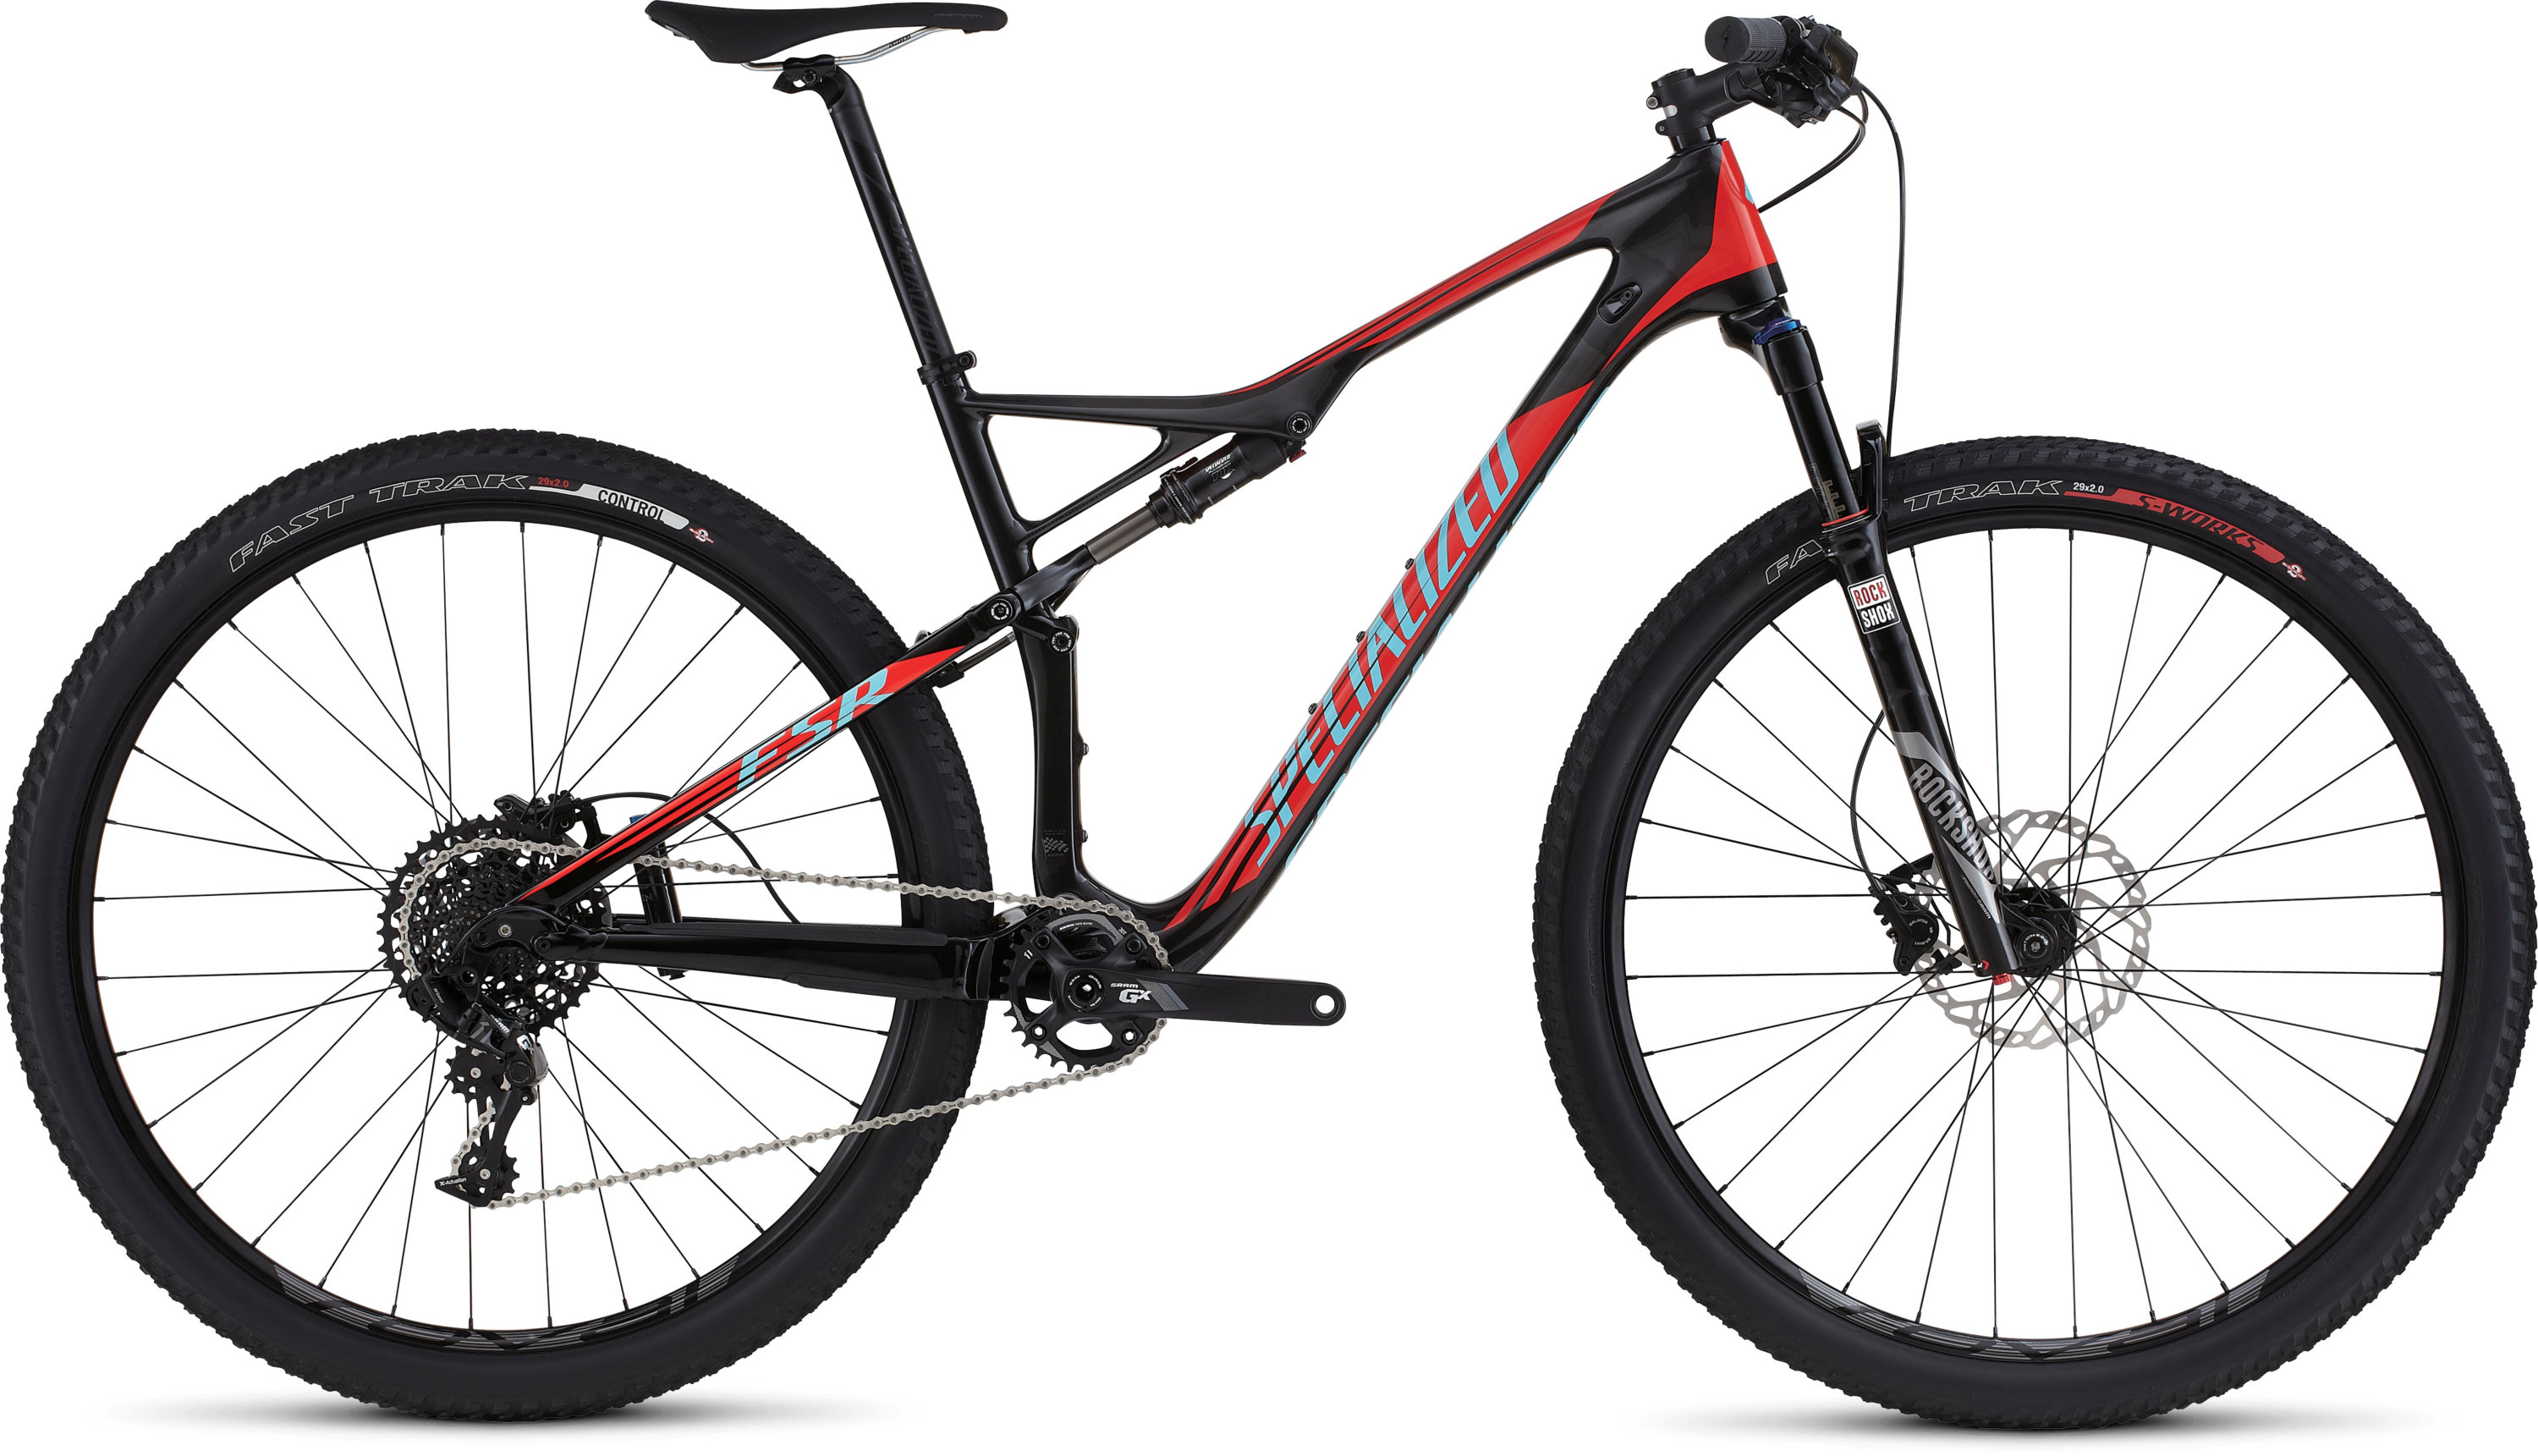 SPECIALIZED EPIC FSR COMP CARBON WC 29 CARB/RKTRED/LTBLU M - SPECIALIZED EPIC FSR COMP CARBON WC 29 CARB/RKTRED/LTBLU M